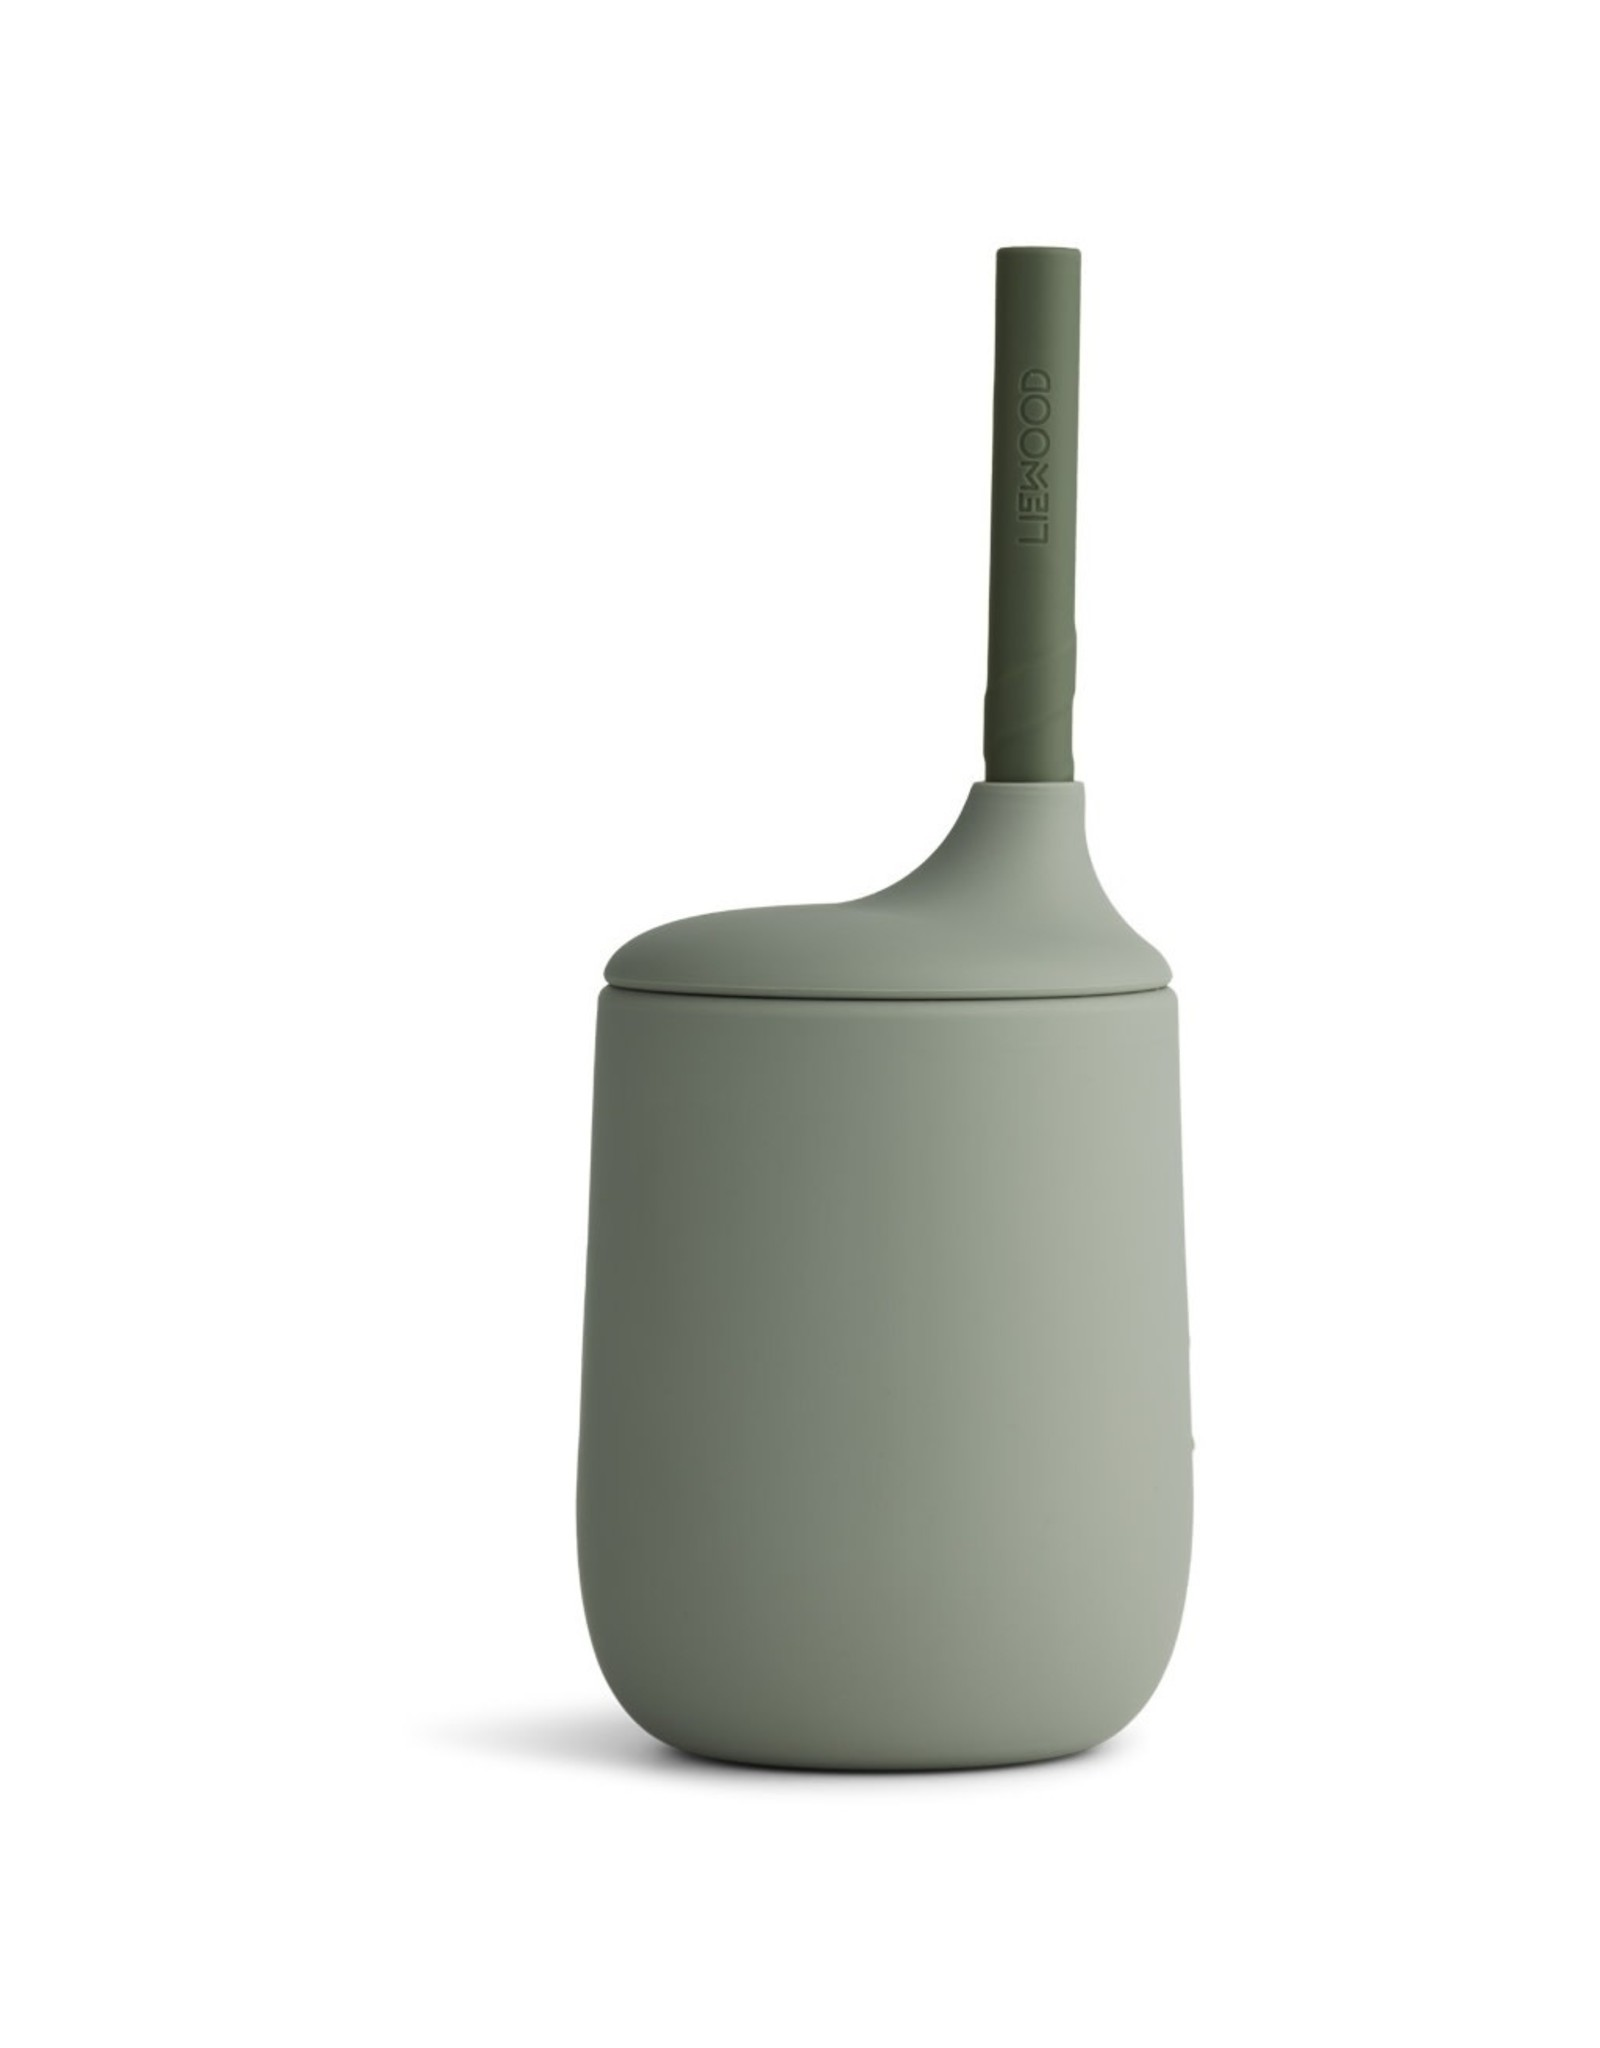 Liewood Ellis Sippy Cup - Faune Green/Hunter Green mix